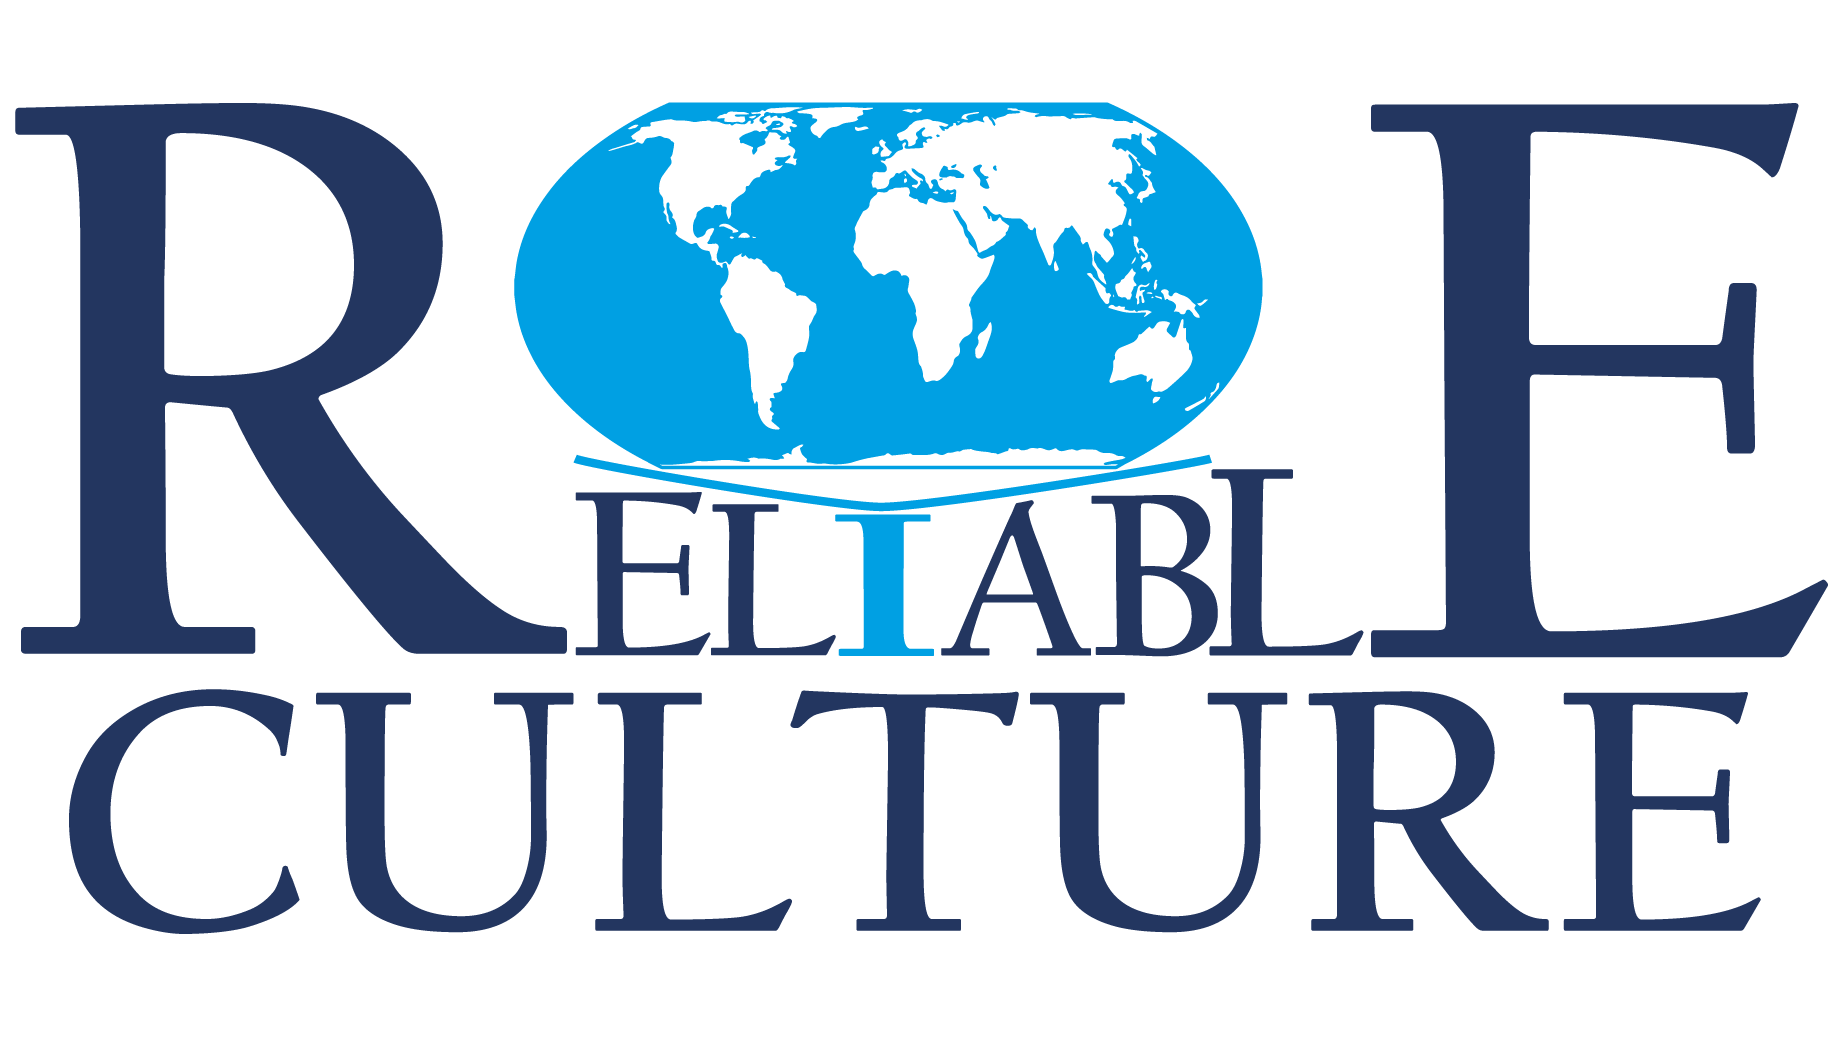 ReliableCulture